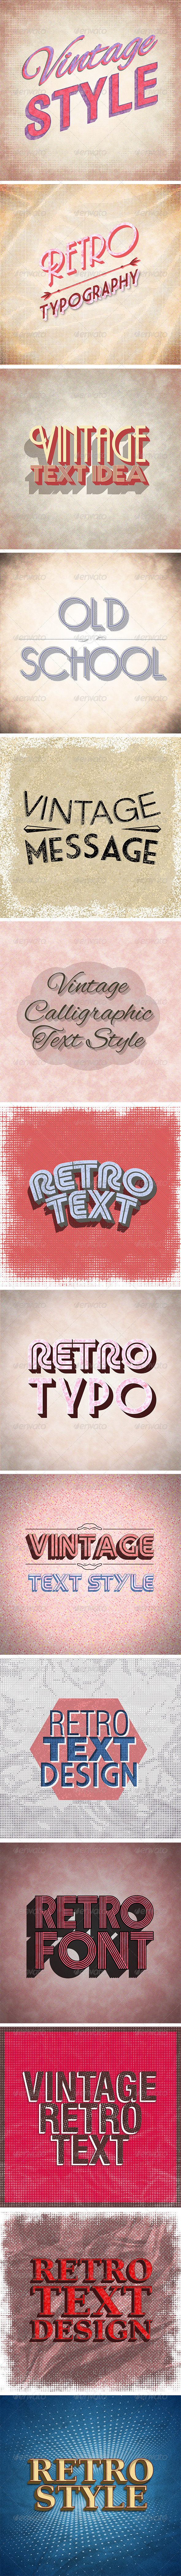 GraphicRiver 14 Retro Text Styles 8322300